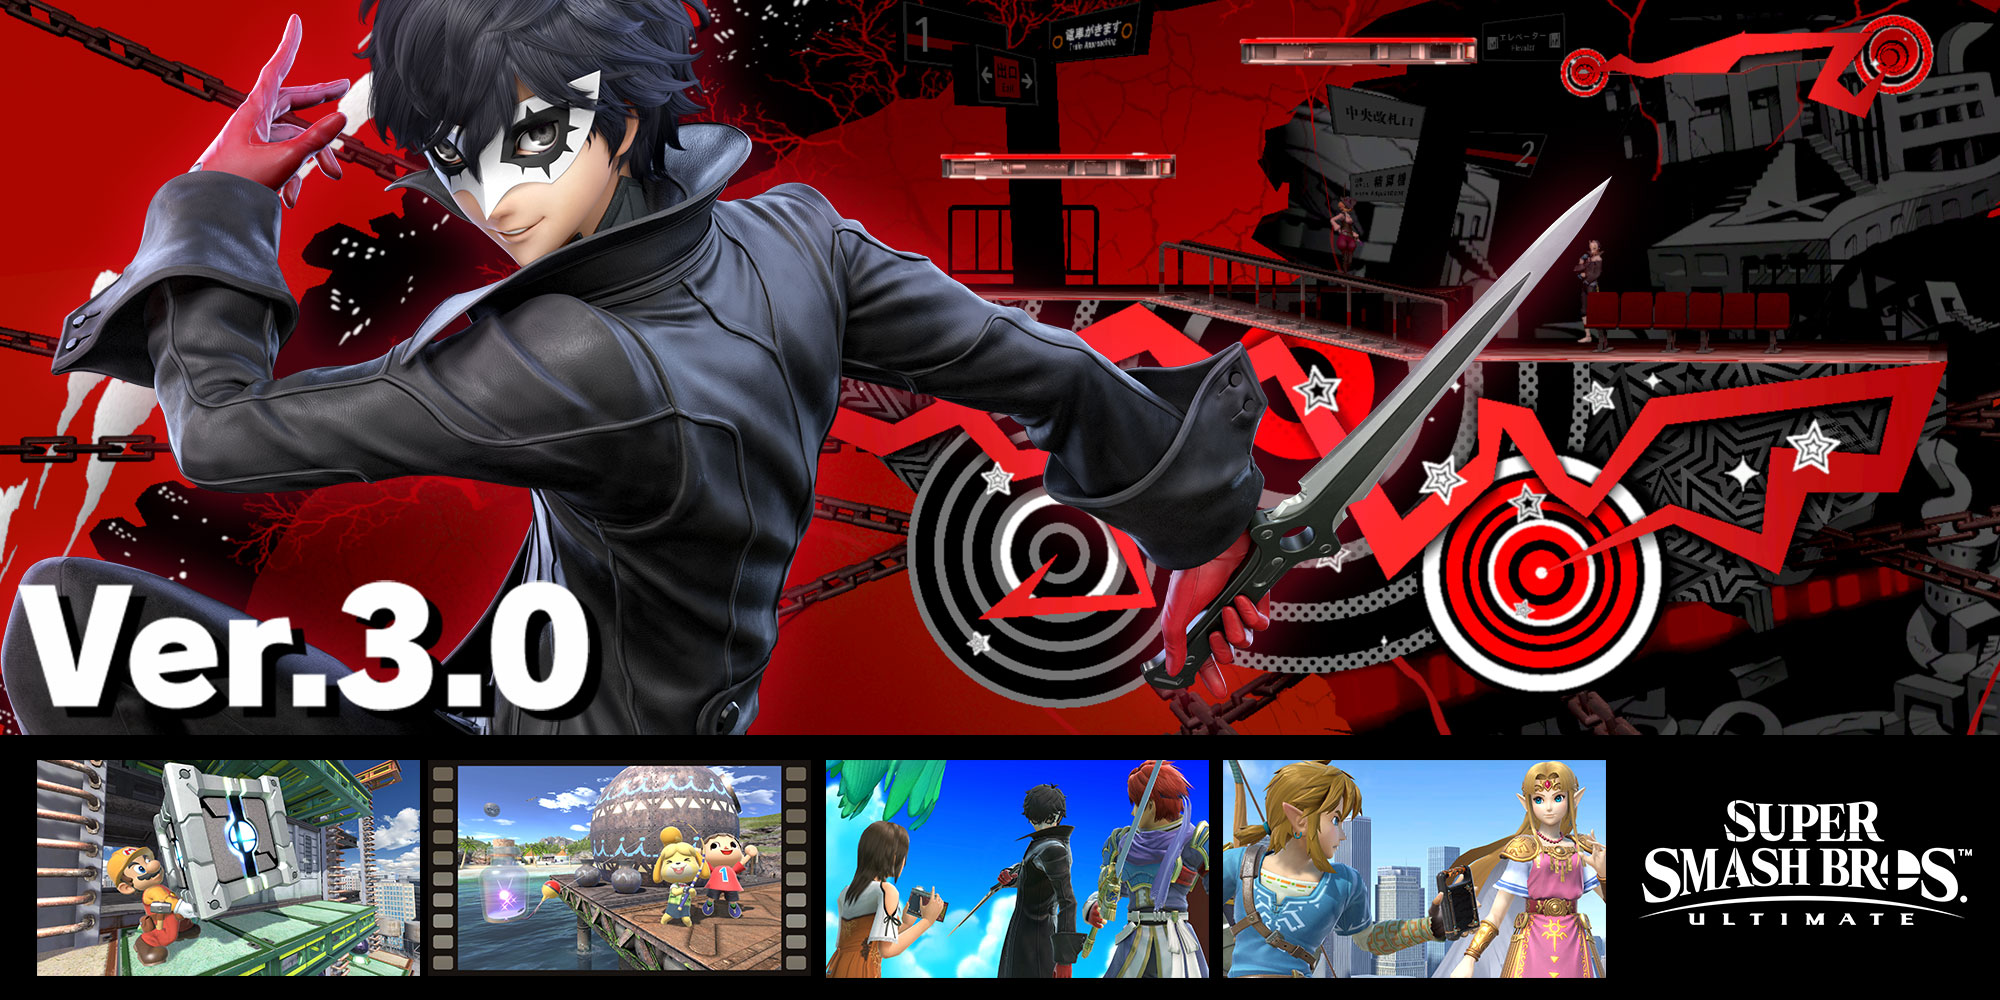 Get more info on Persona 5's Joker in Super Smash Bros. Ultimate, straight from Mr Sakurai!